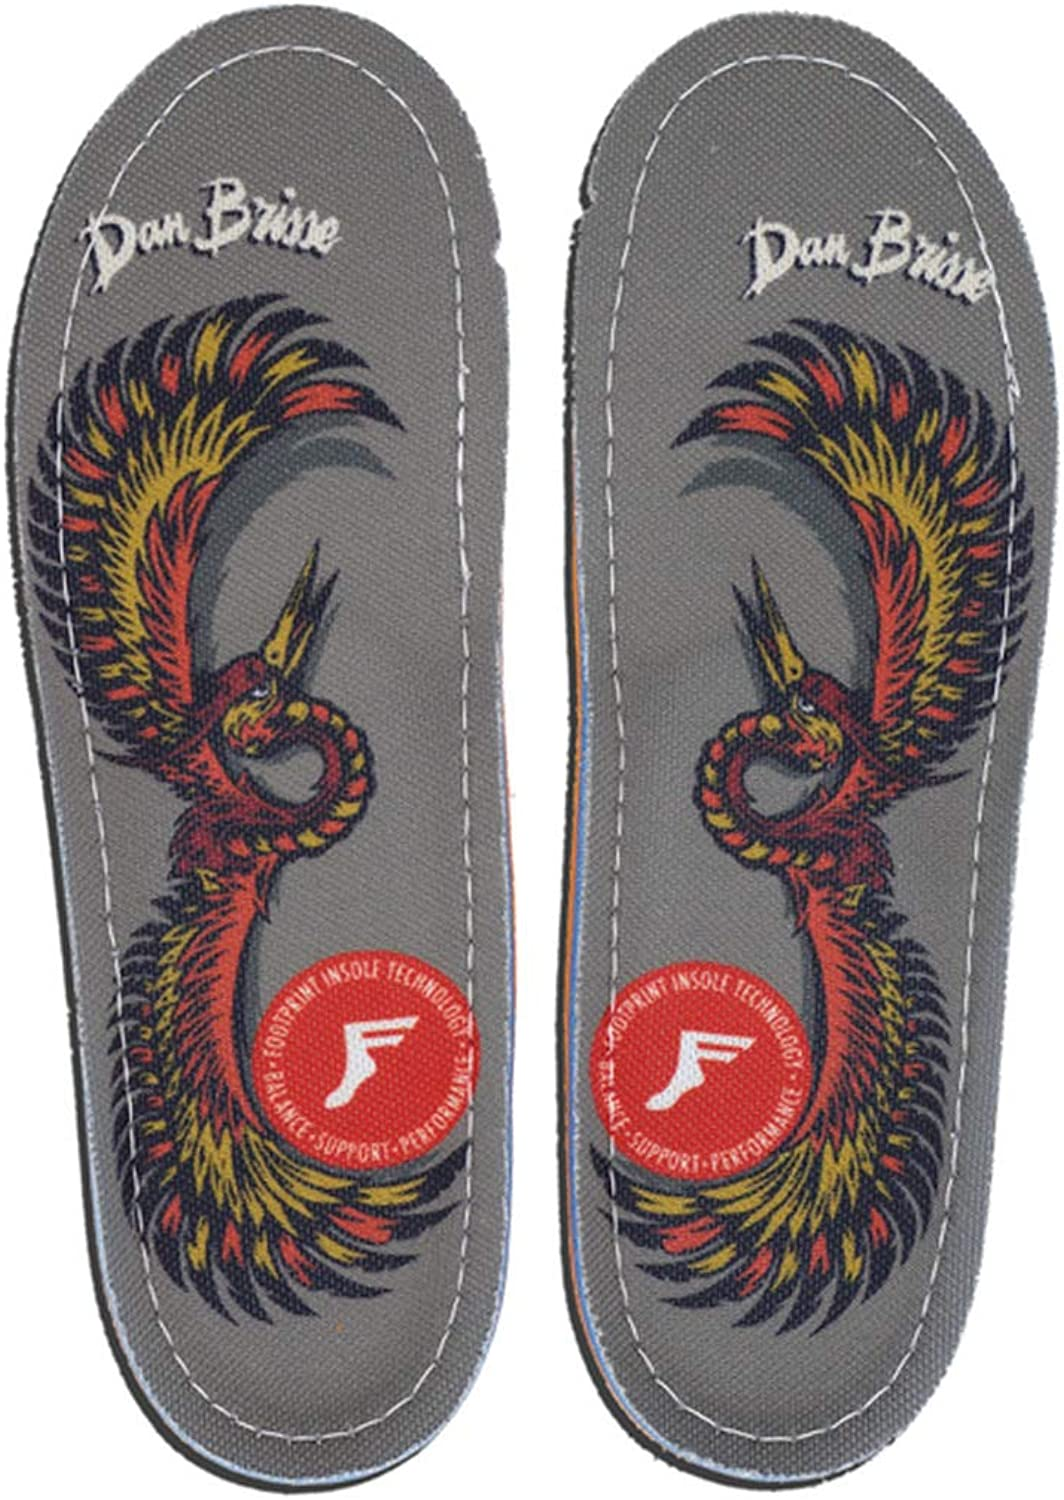 Footprint KF Orthotic Pro Push Scooter Insoles Dan Brisse Falcon